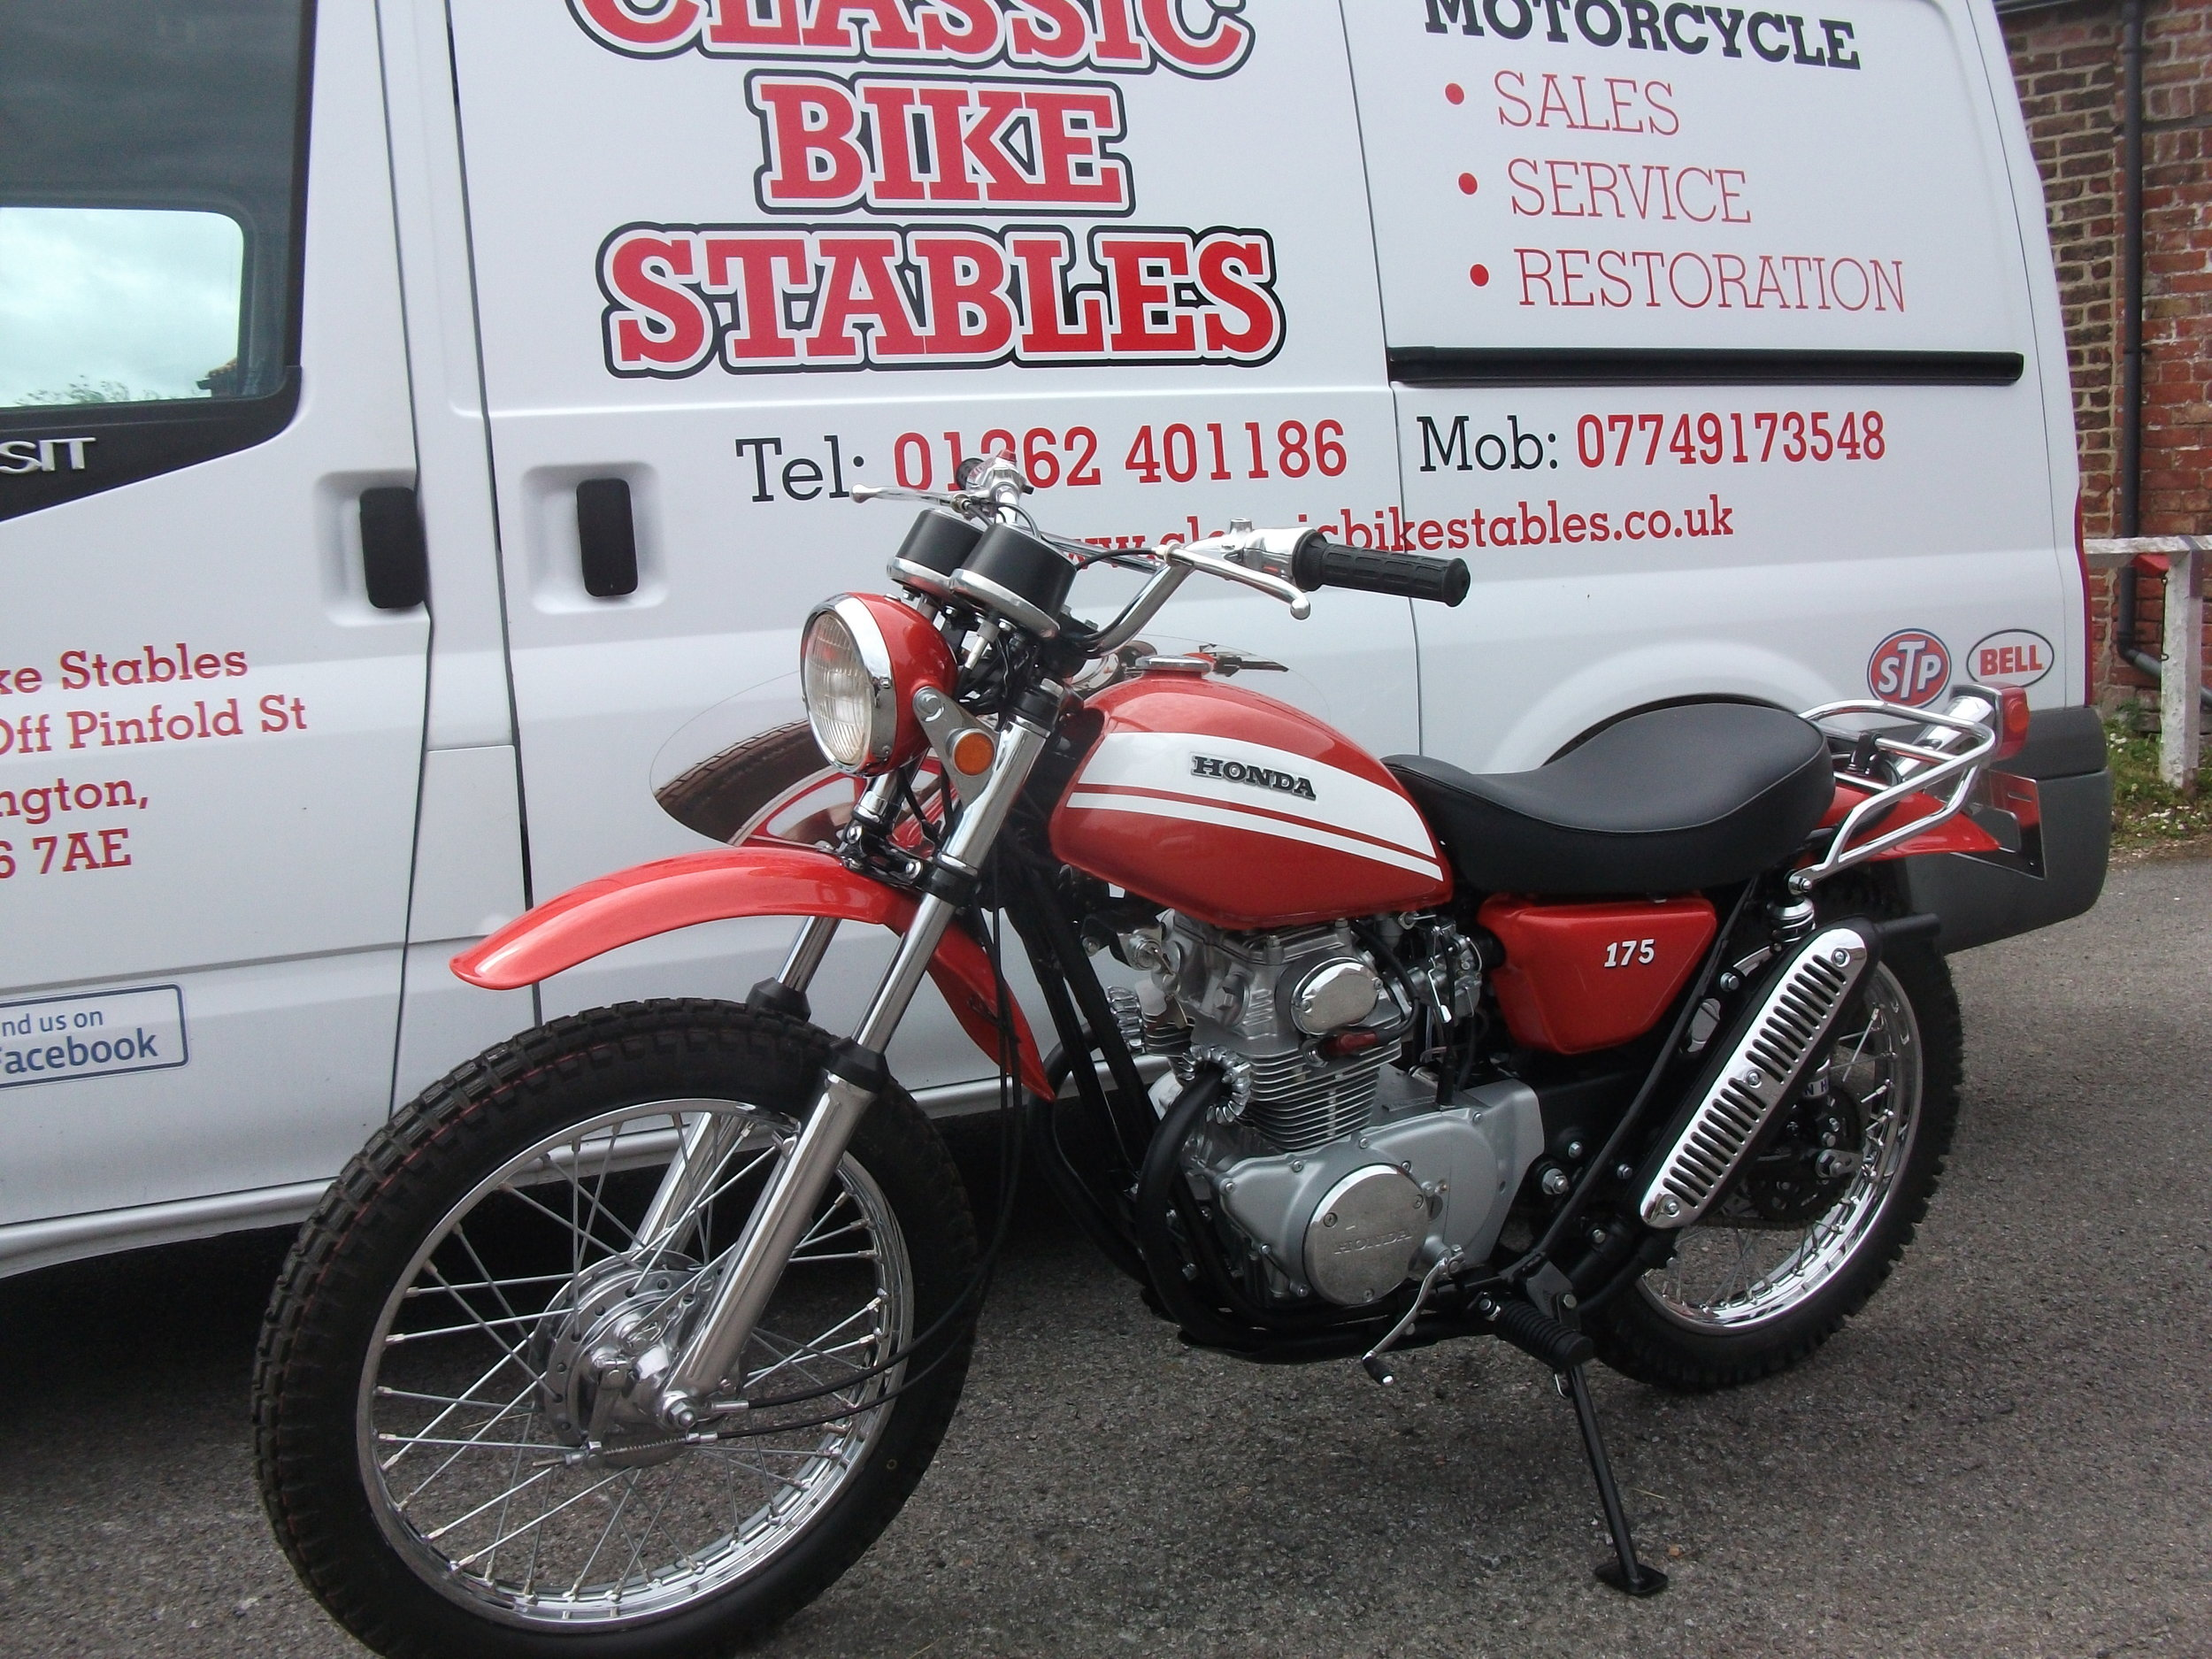 Complete restoration of 1970 Honda SL175 .